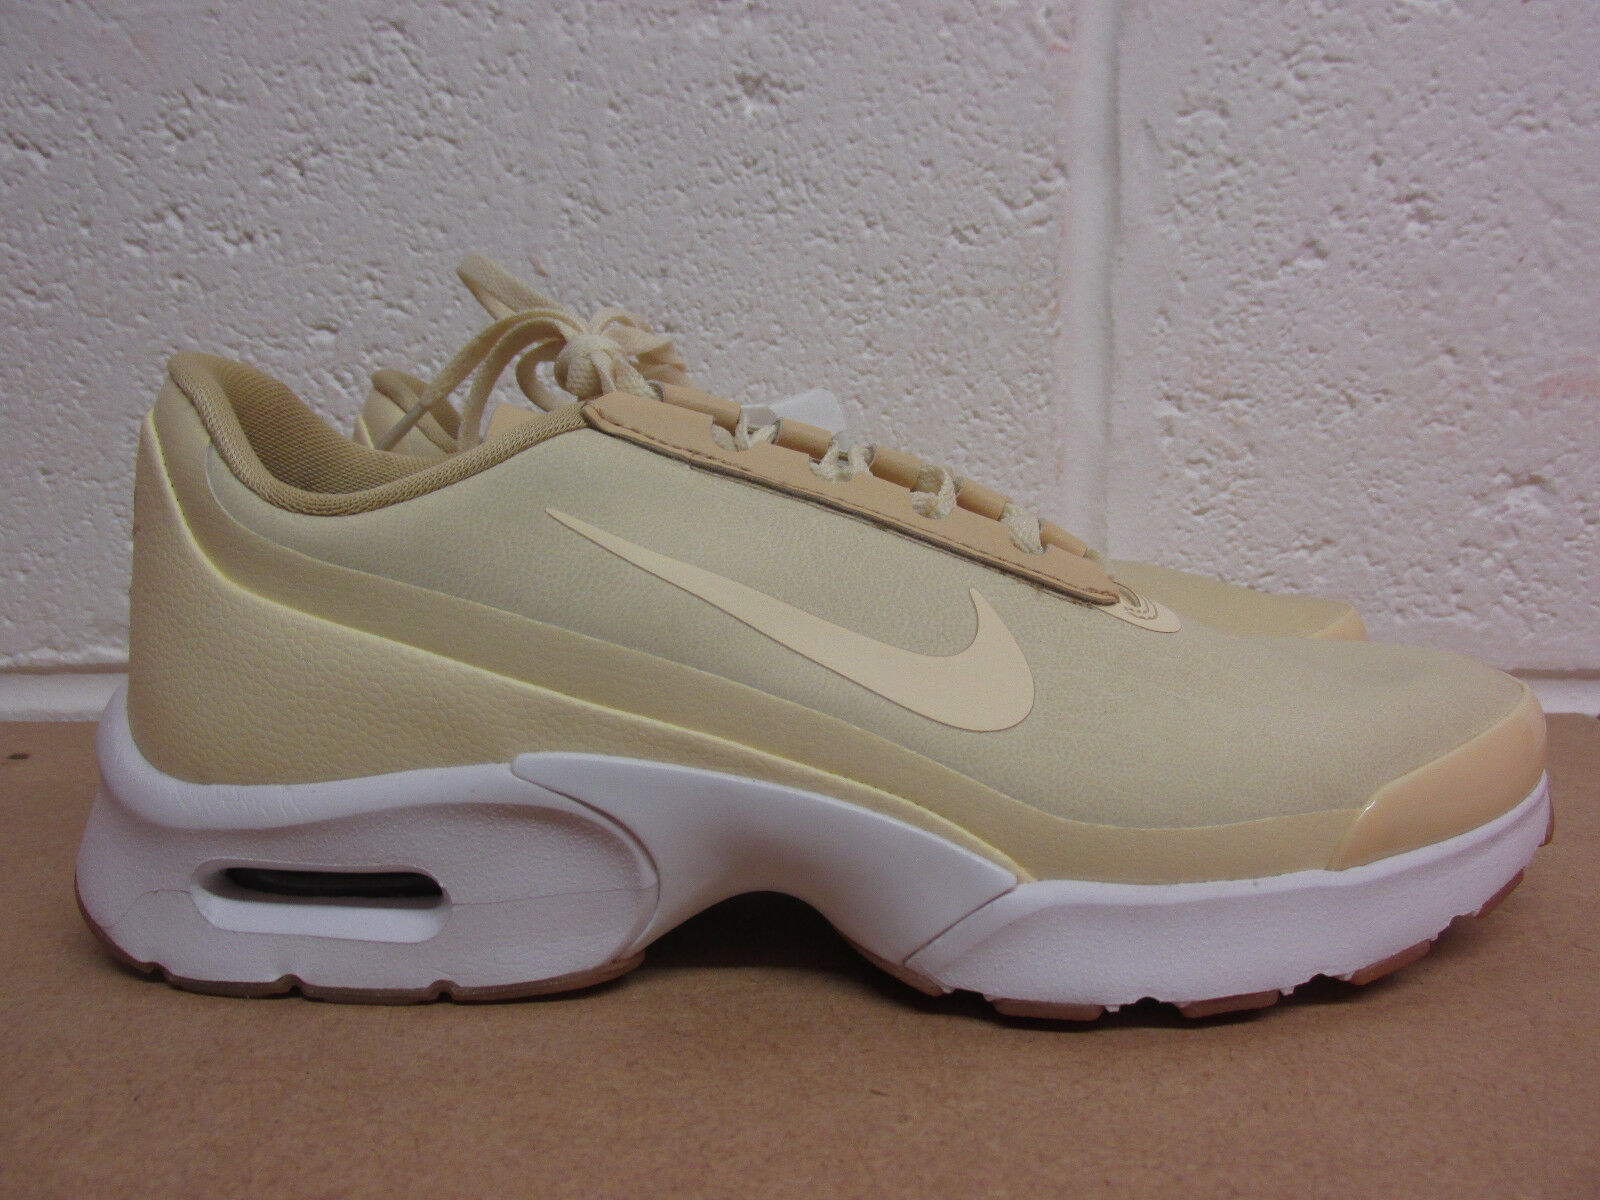 Nike air max jewell 896195 100  Femme  trainers sneakers  chaussures  SAMPLE